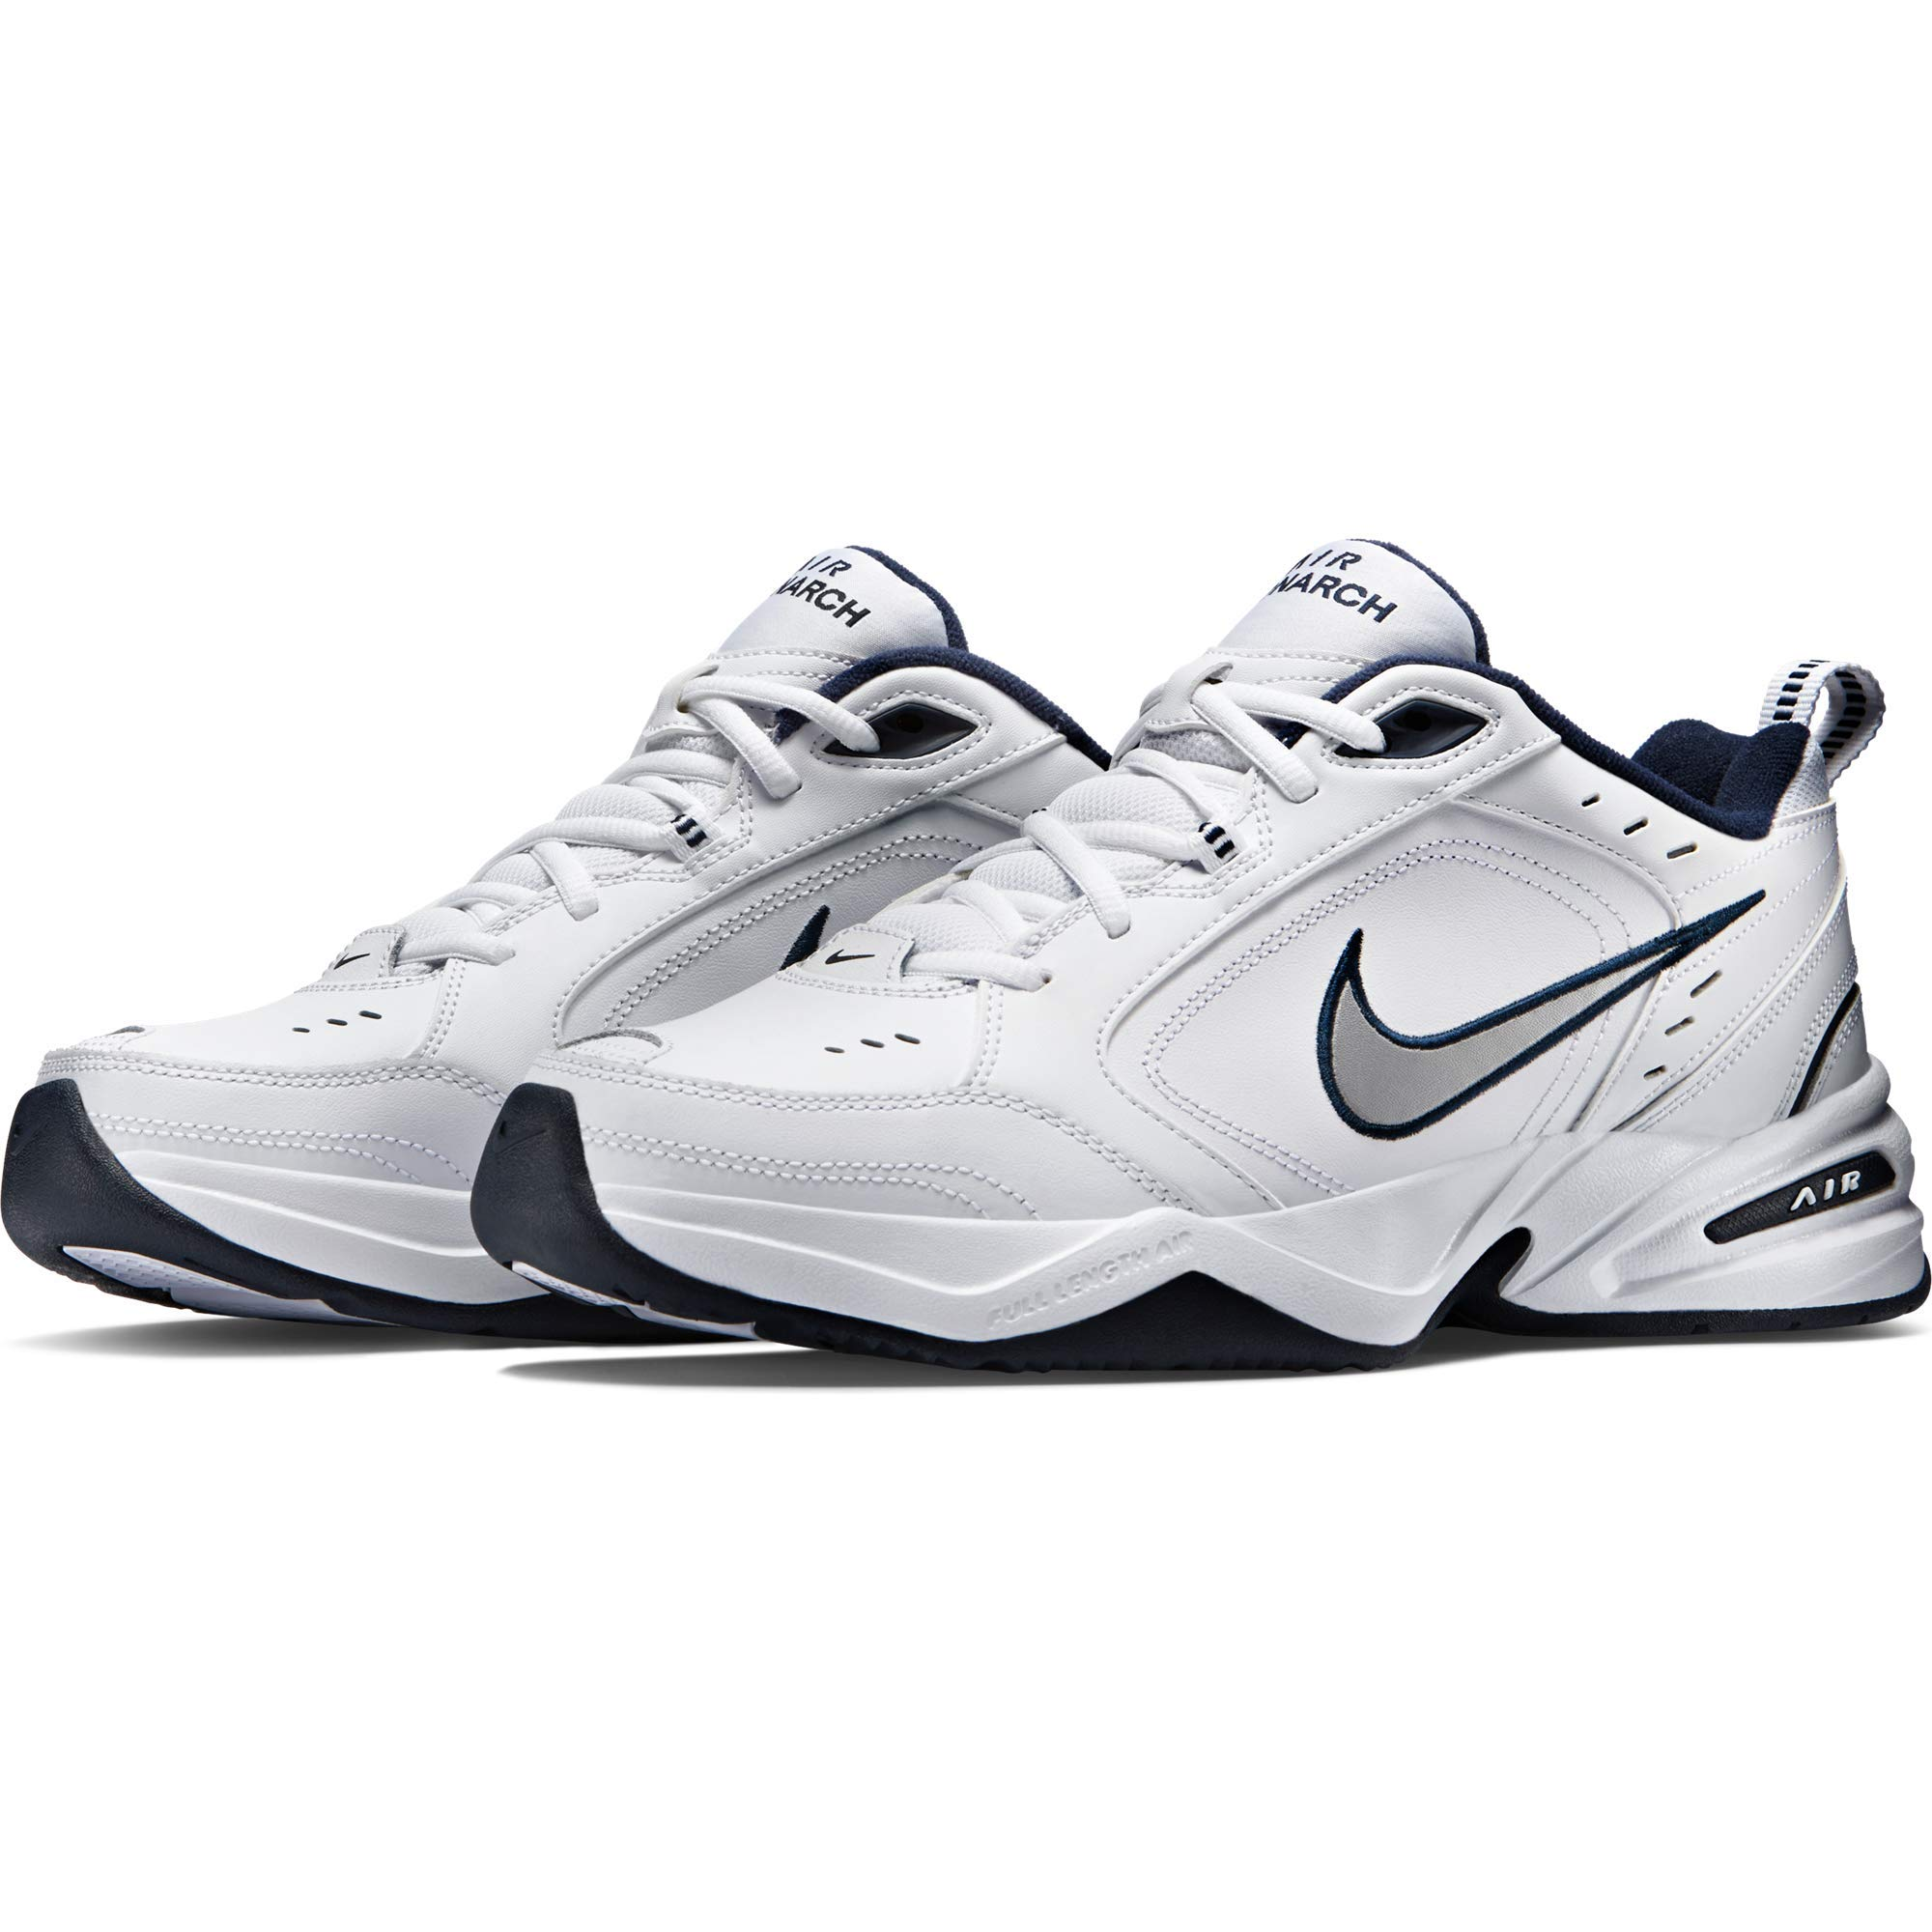 Nike Men's Air Monarch IV Cross Trainer, White/Metallic Silver/Midnight Navy, 9 XW US by Nike